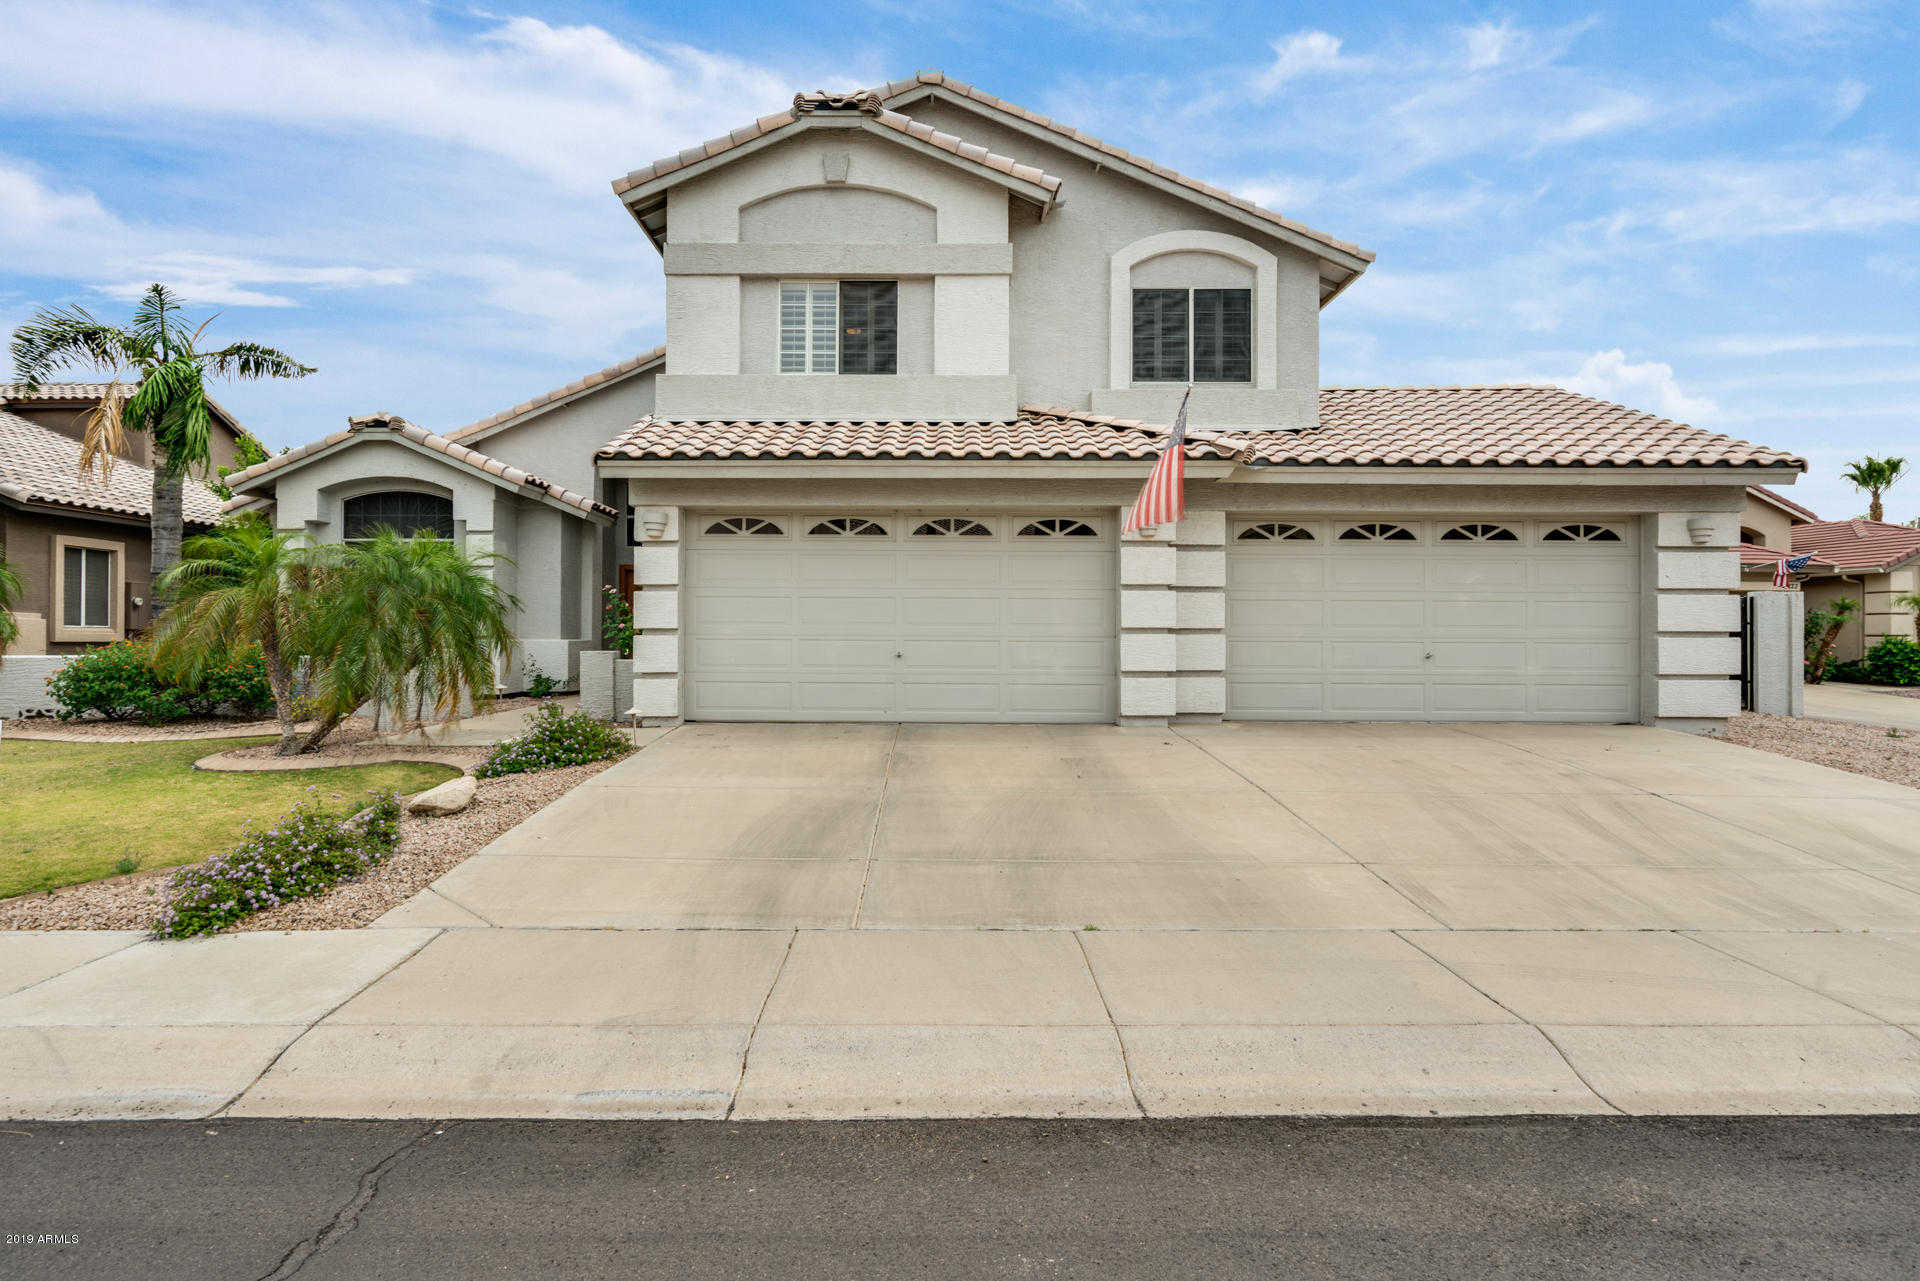 $649,900 - 4Br/4Ba - Home for Sale in Arrowhead Lakes, Glendale